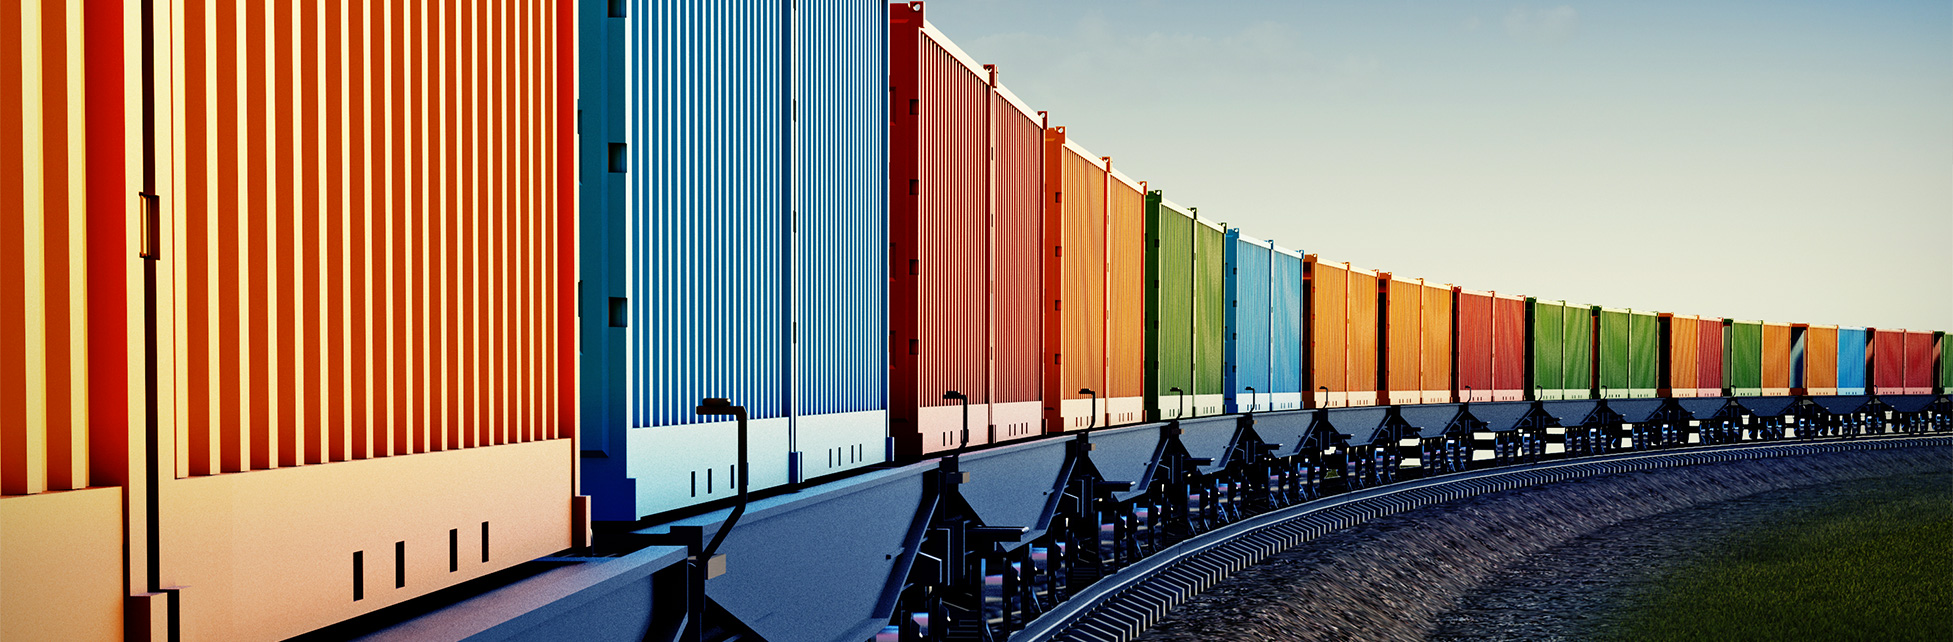 Railway & Trucking Carriers Cover Image